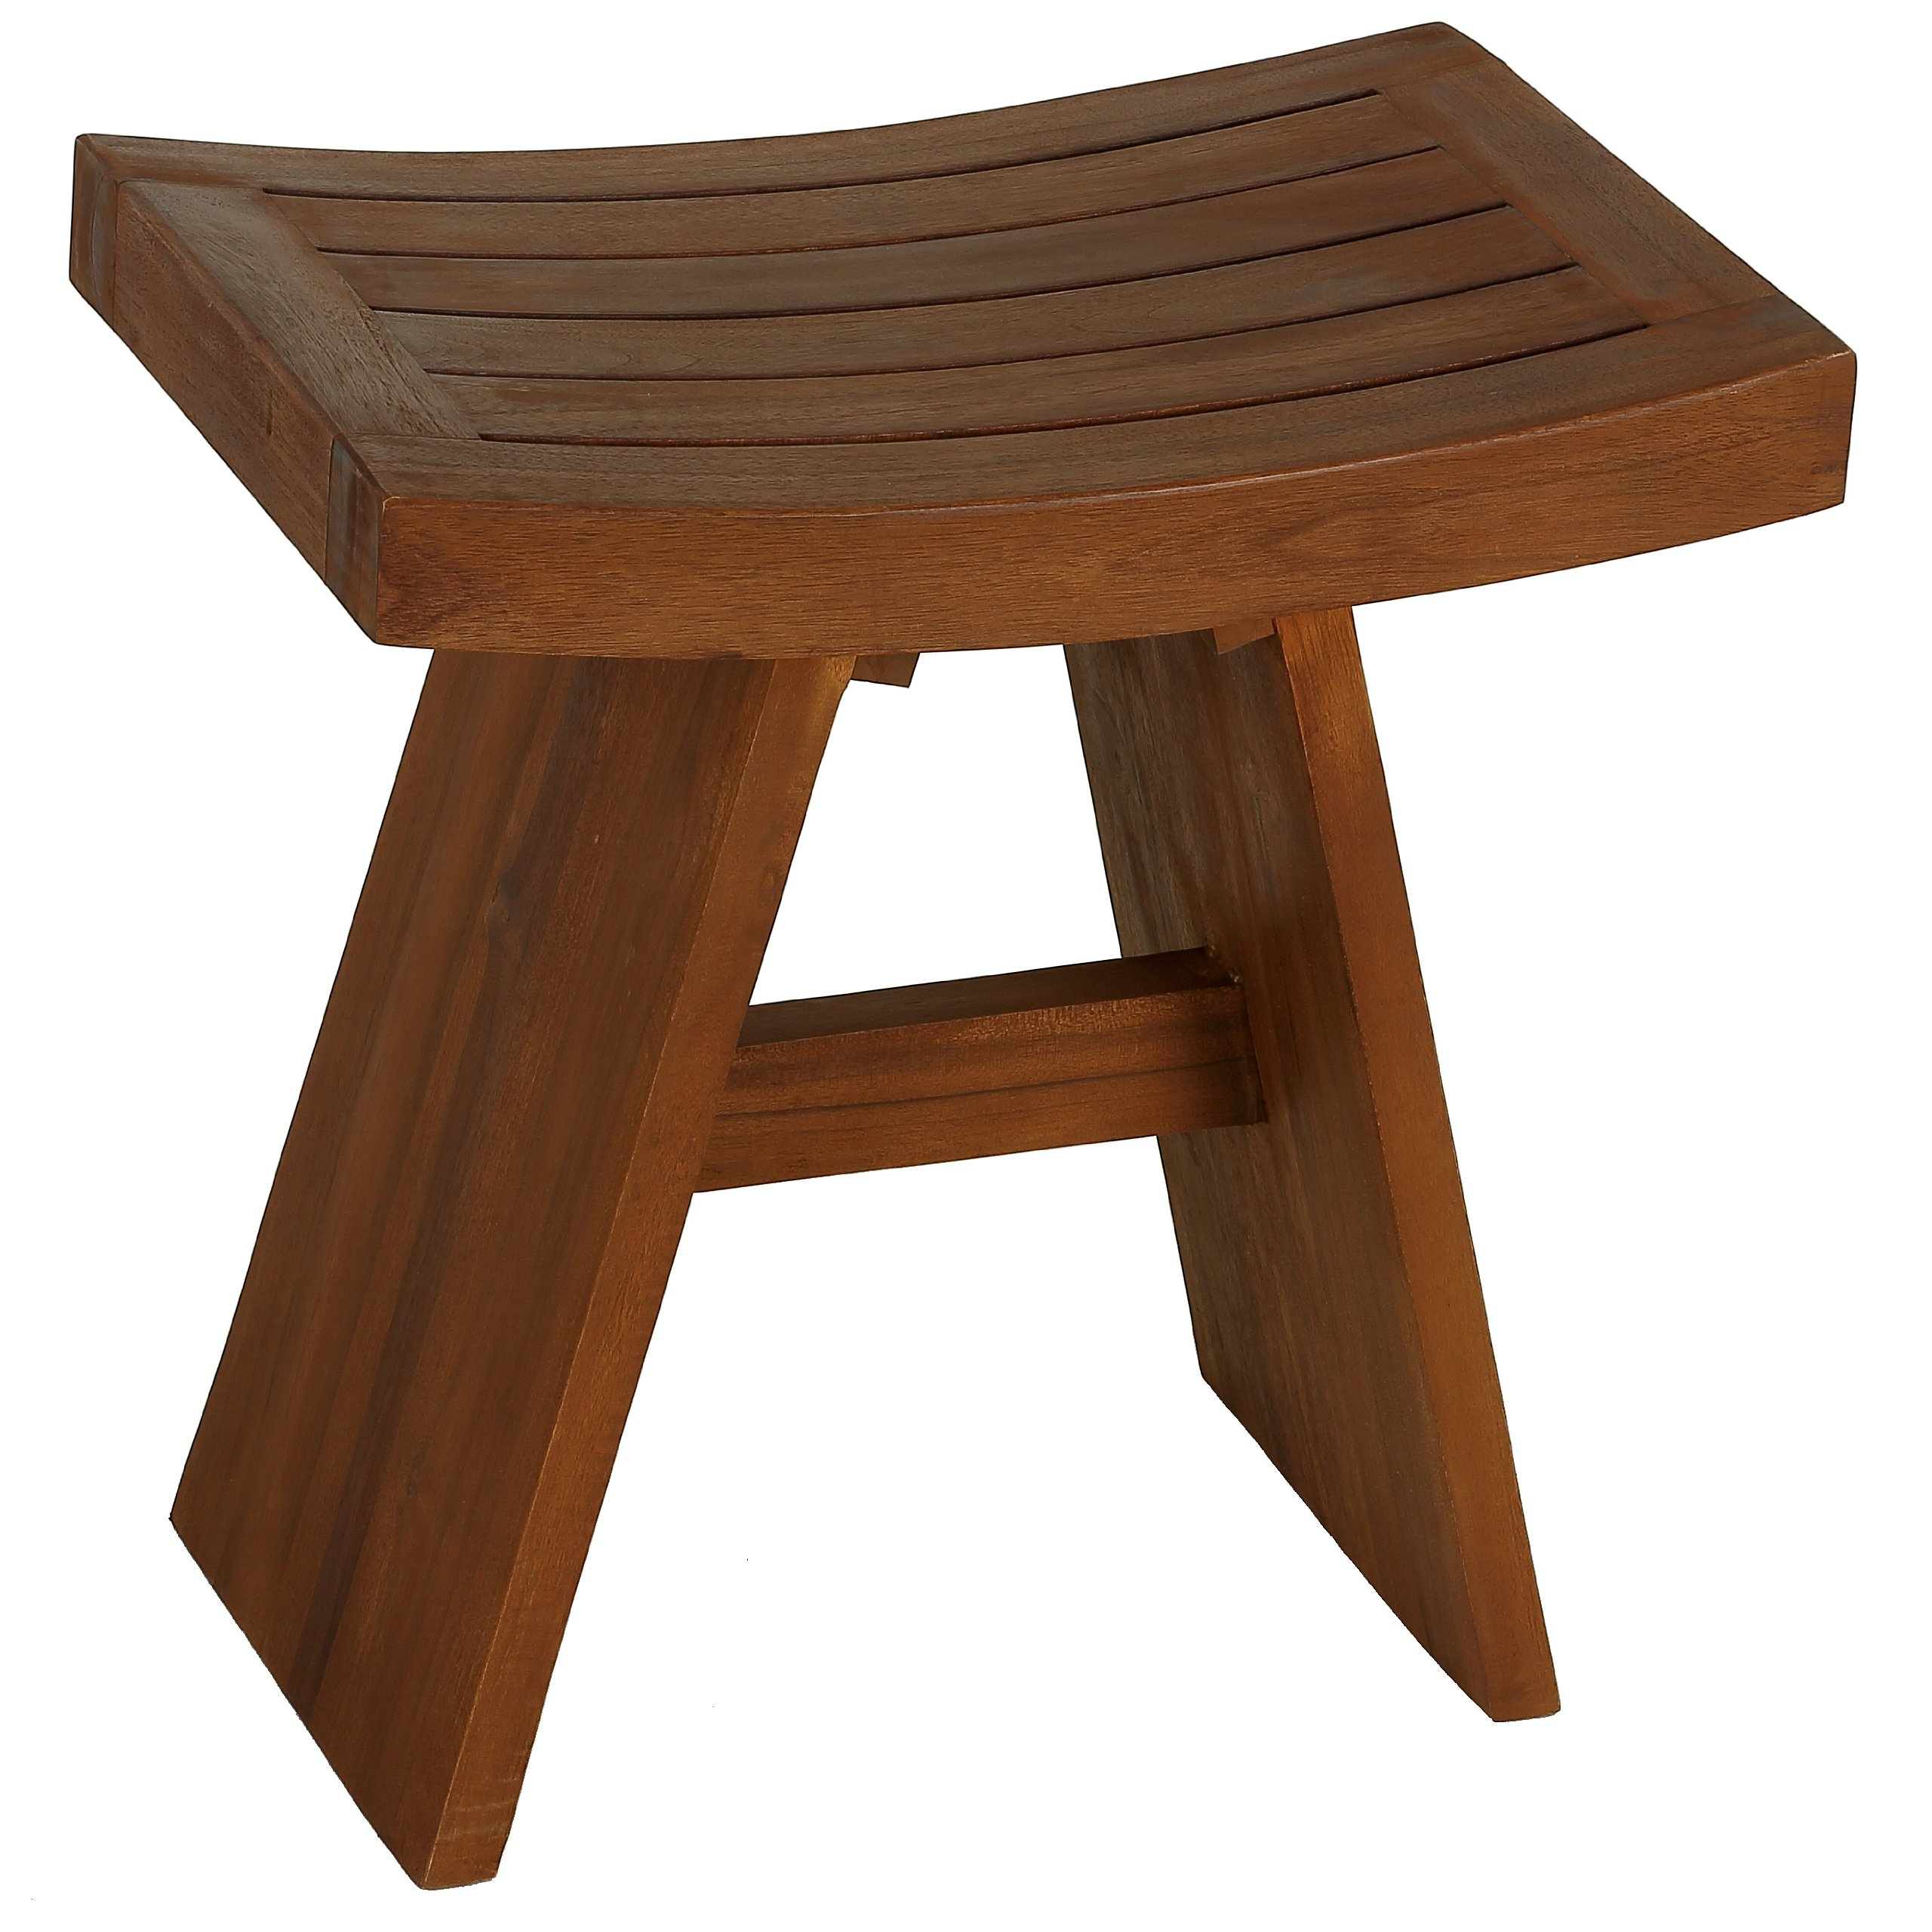 Bare Decor Casual BARE-AC2016 Sofi Shower Stool in Solid Teak Wood, 18 x 12 x 18'', Brown